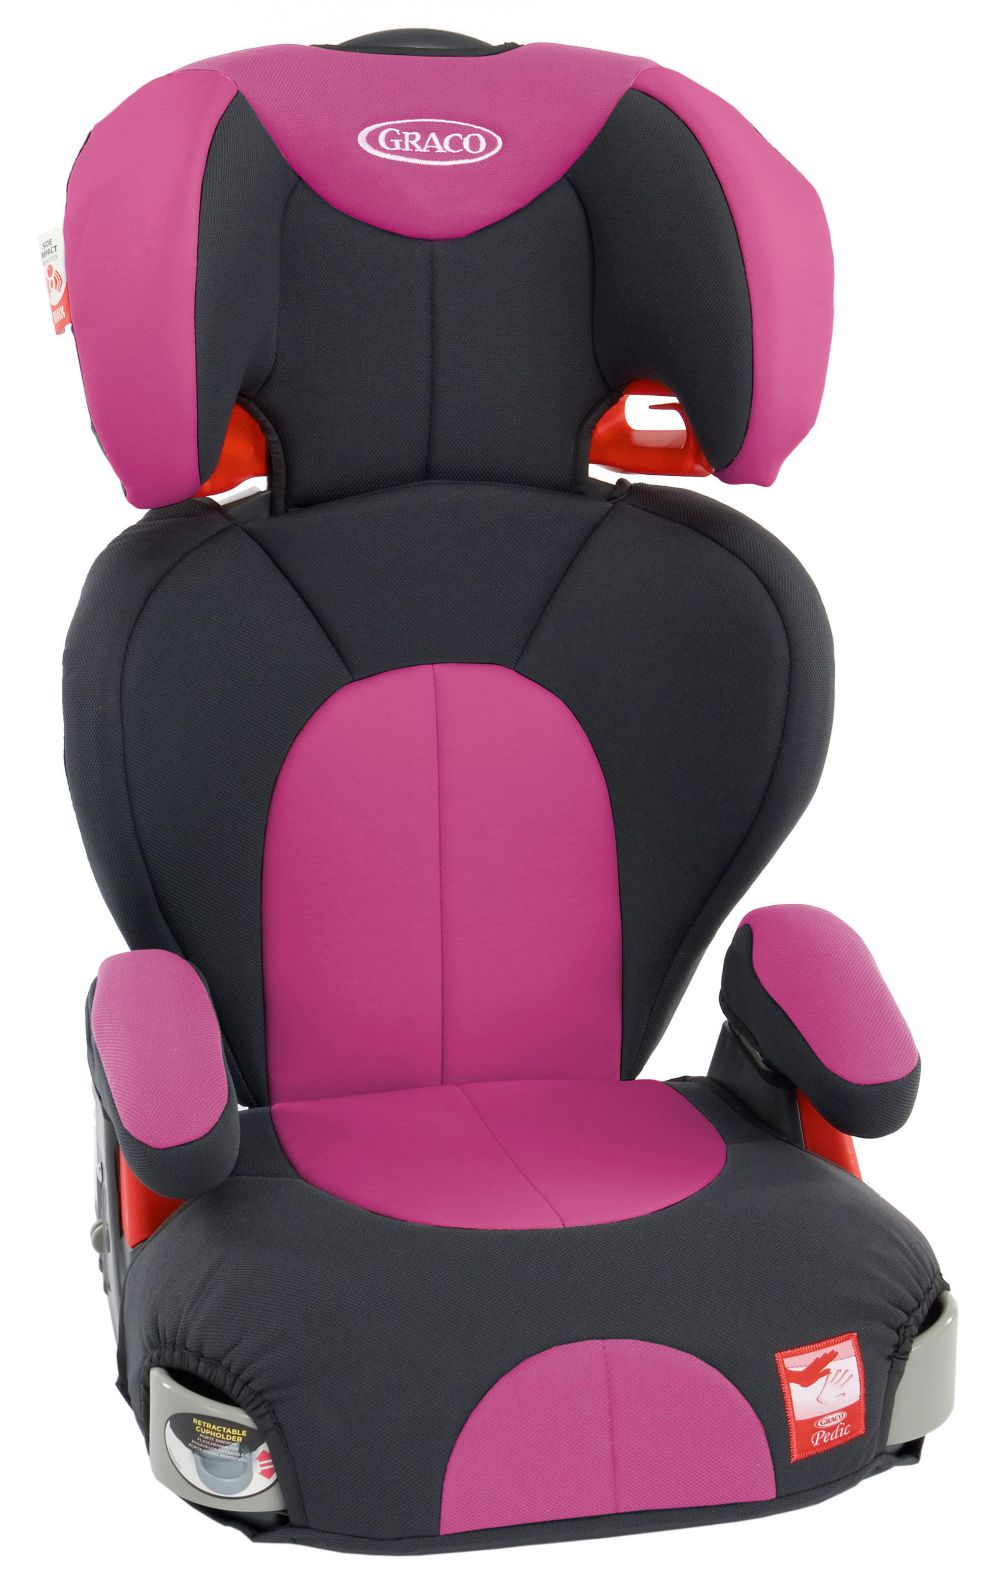 Graco Logico L Sport High Back Booster Seat Group 2 3 15 36kg 4 12 Yrs Pink 3660730035184